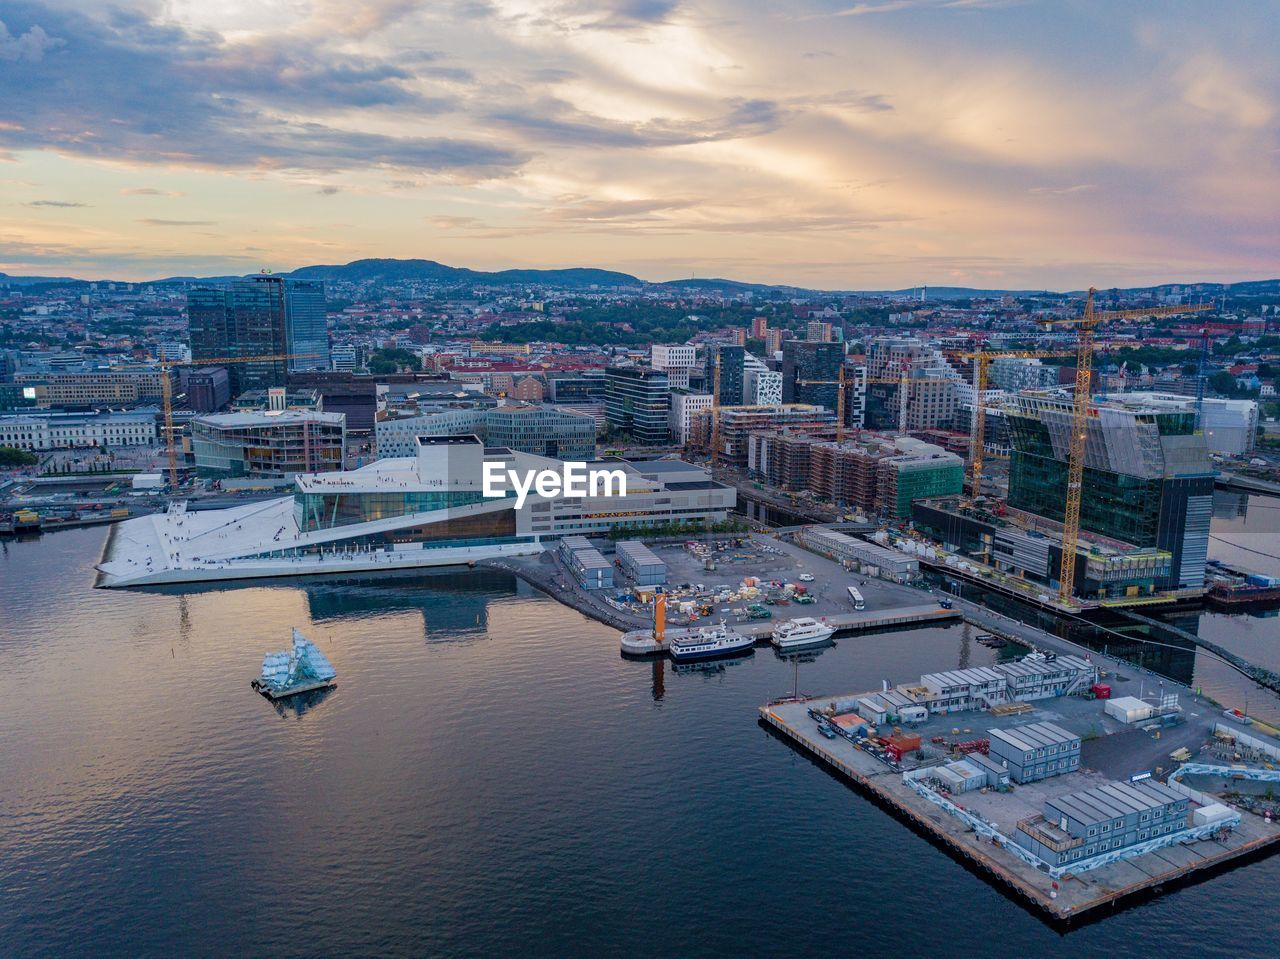 building exterior, architecture, sky, city, water, built structure, cityscape, cloud - sky, nautical vessel, sunset, transportation, high angle view, nature, no people, harbor, river, building, mode of transportation, waterfront, outdoors, office building exterior, skyscraper